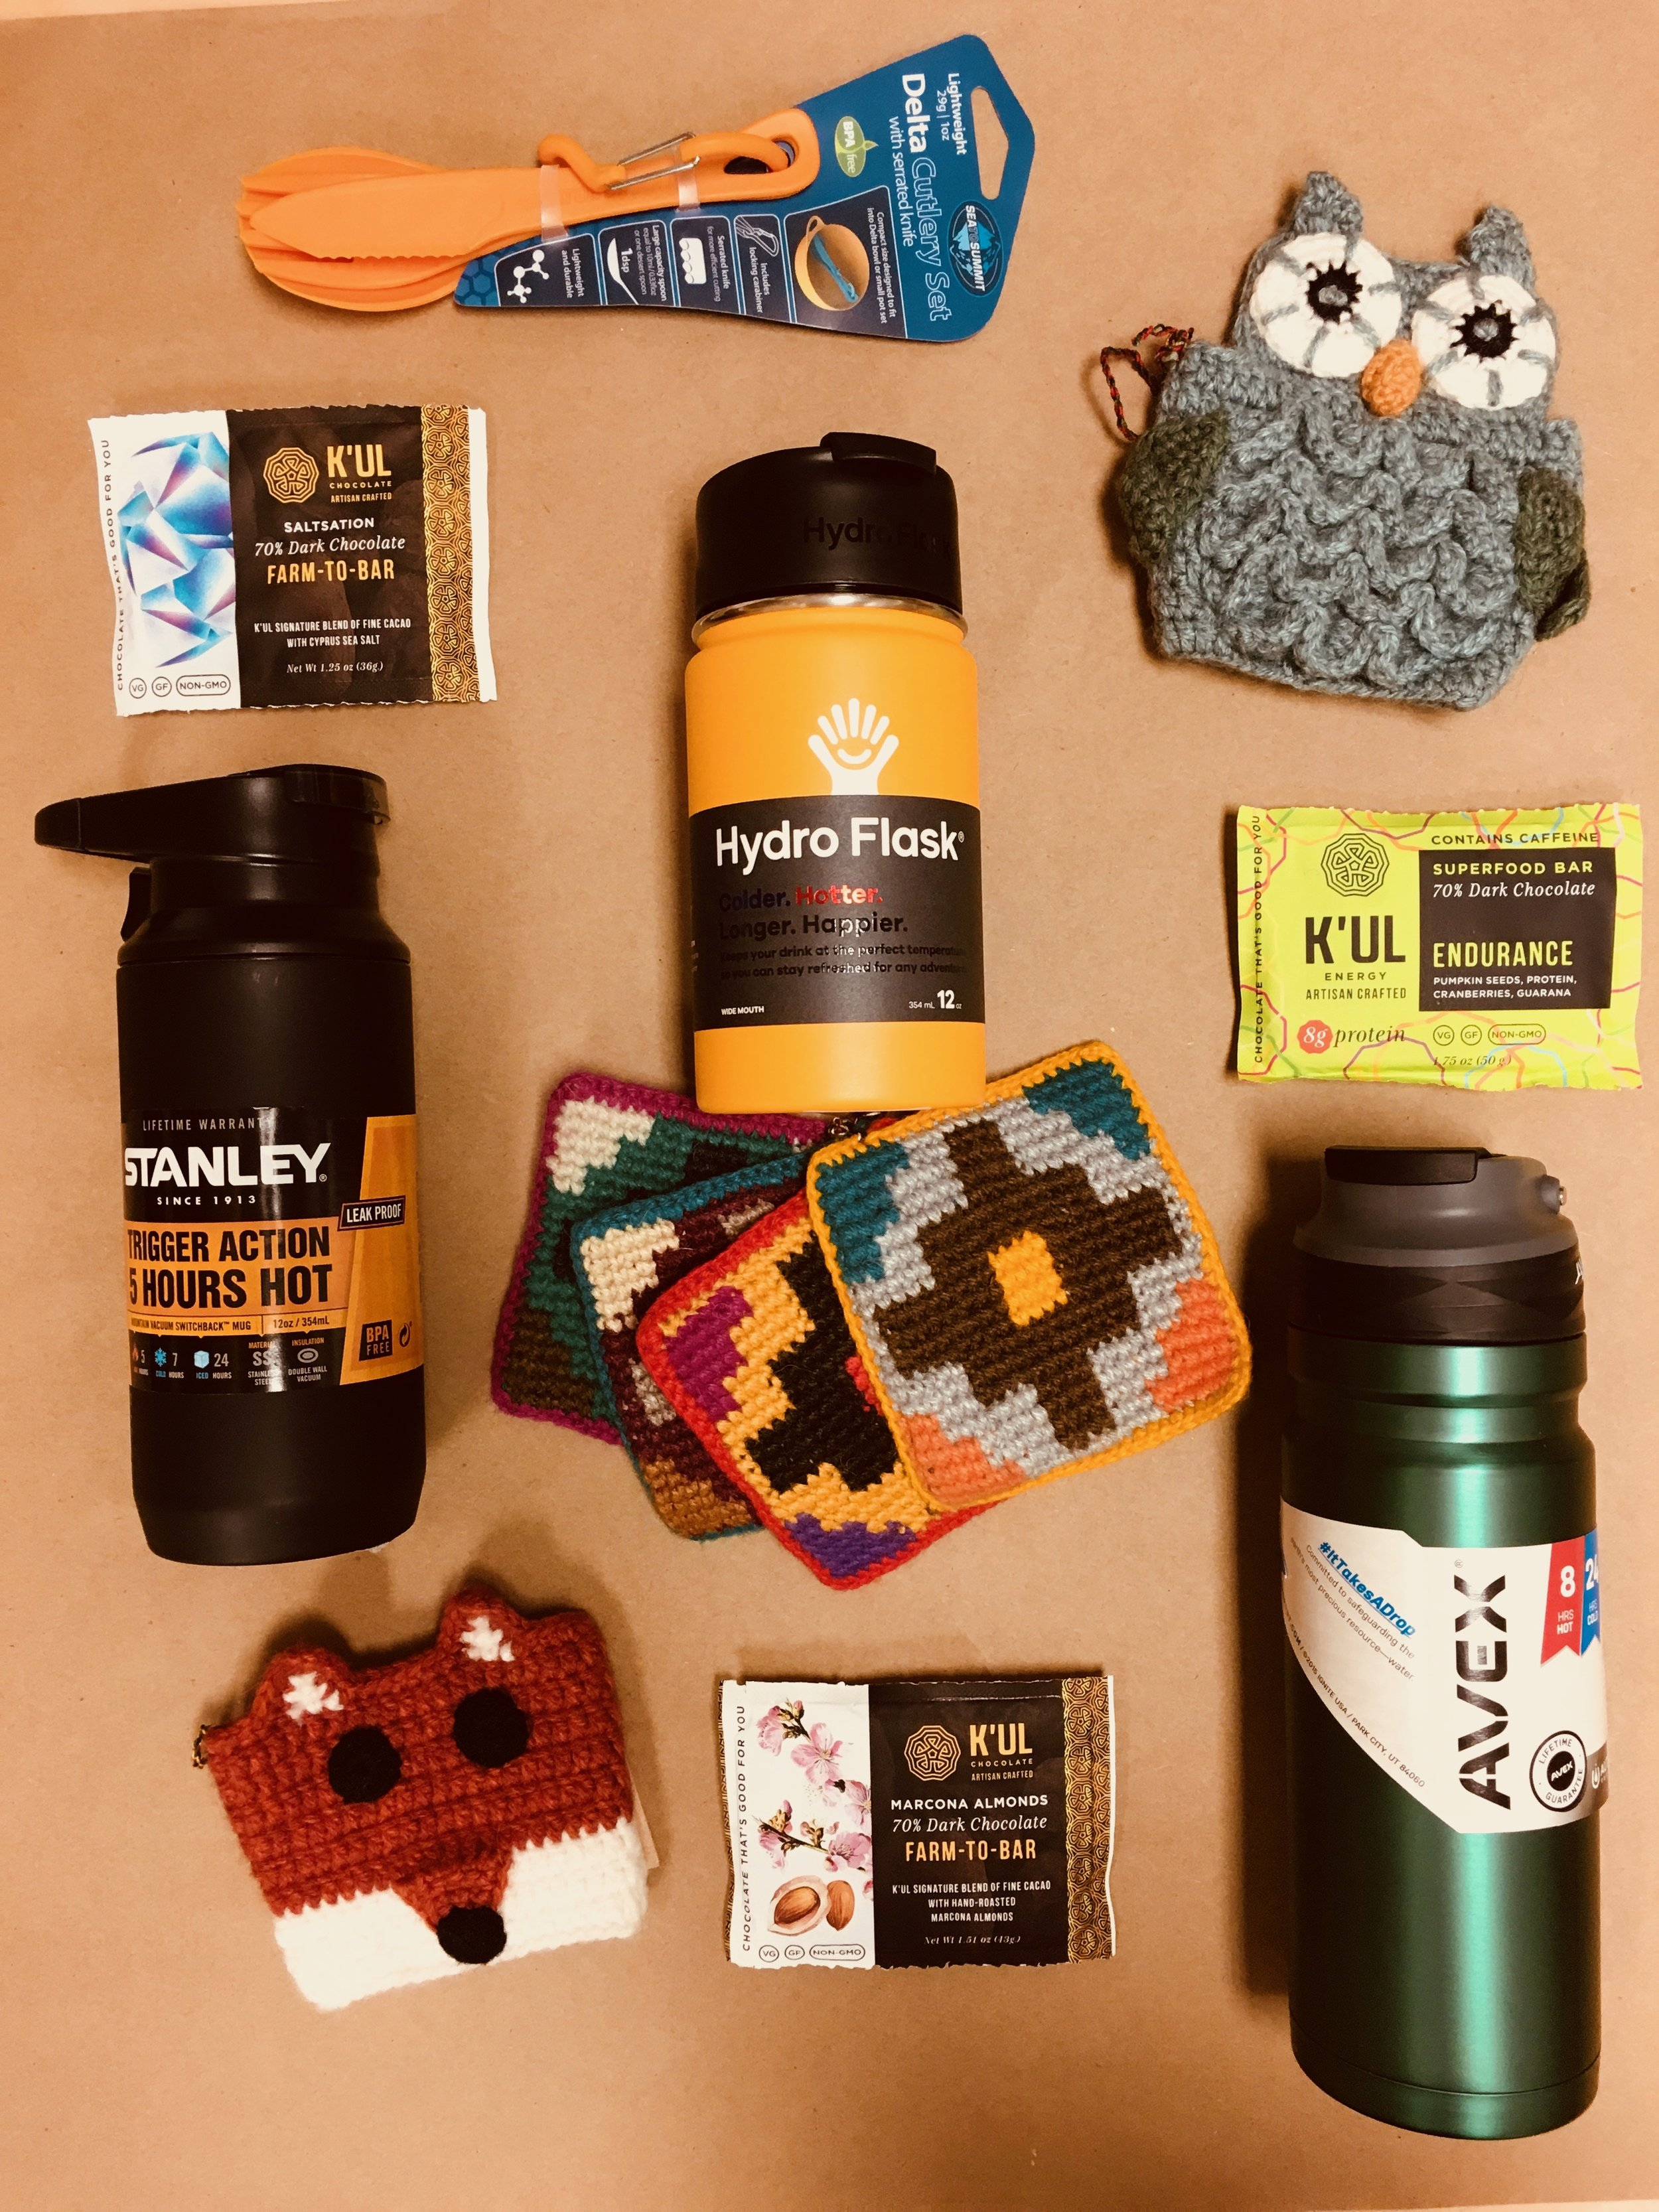 STOCK THE STOCKING -For the coffee and hot chocolate lovers in your life thermoses from Stanley, Avex, and Hydroflask make a great gift with some delicious dark chocolate from K'ul. Top your gift off with Andes animal cozies!